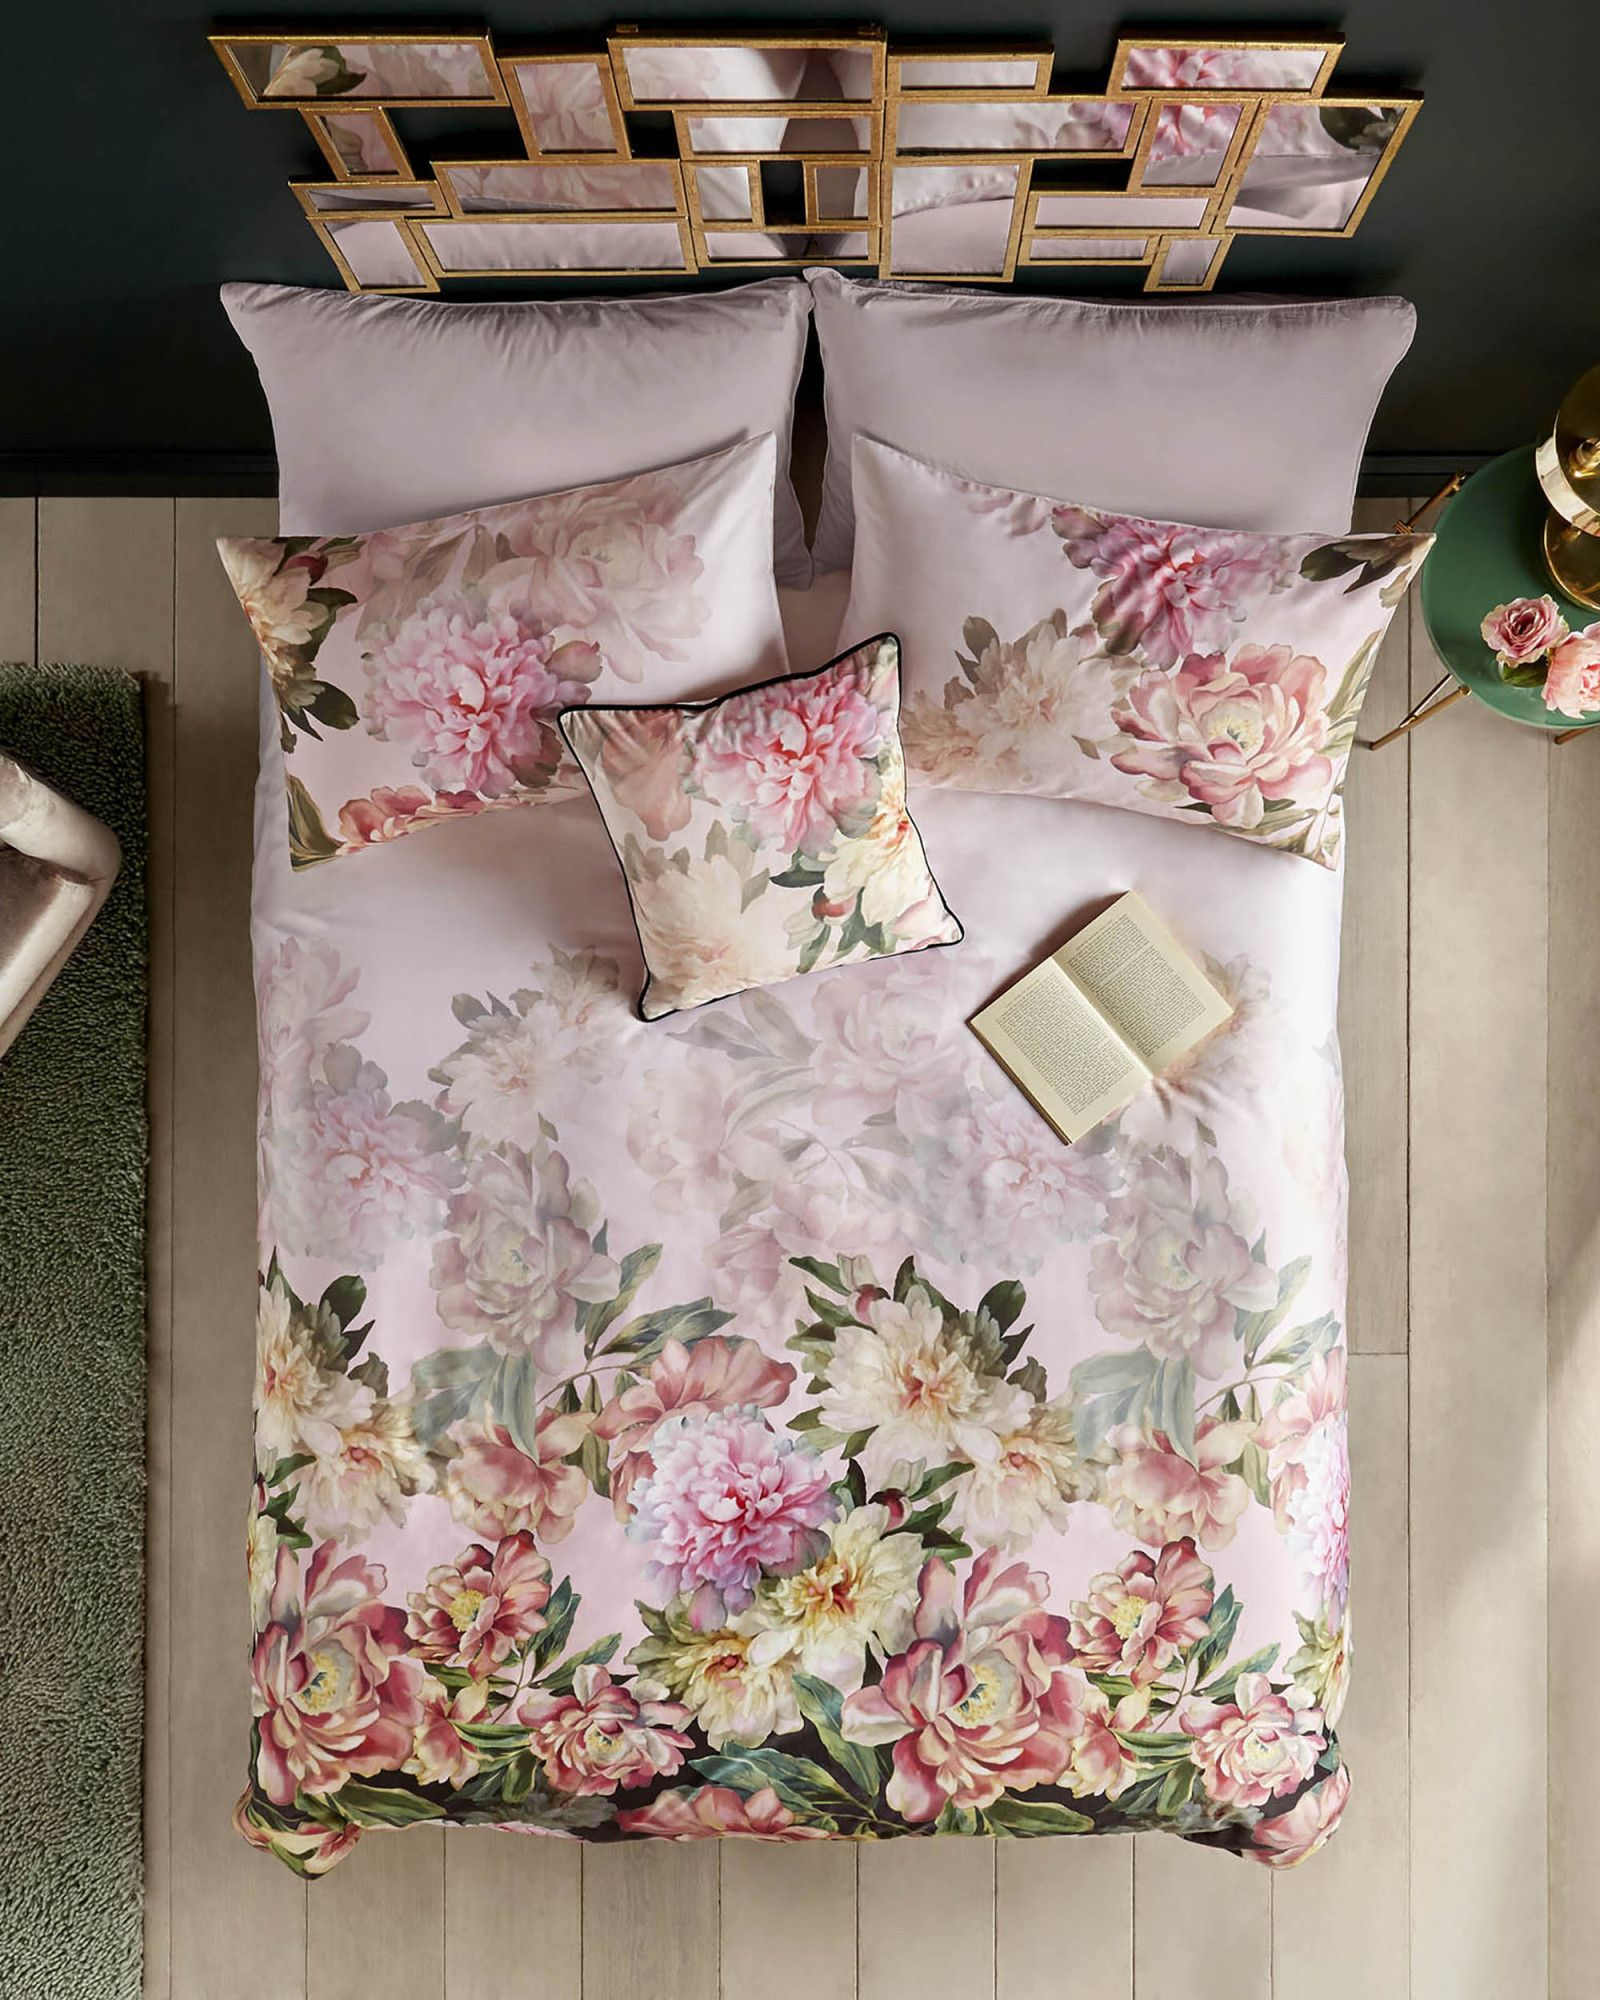 linara painted poise cotton super king duvet cover tedtotoe